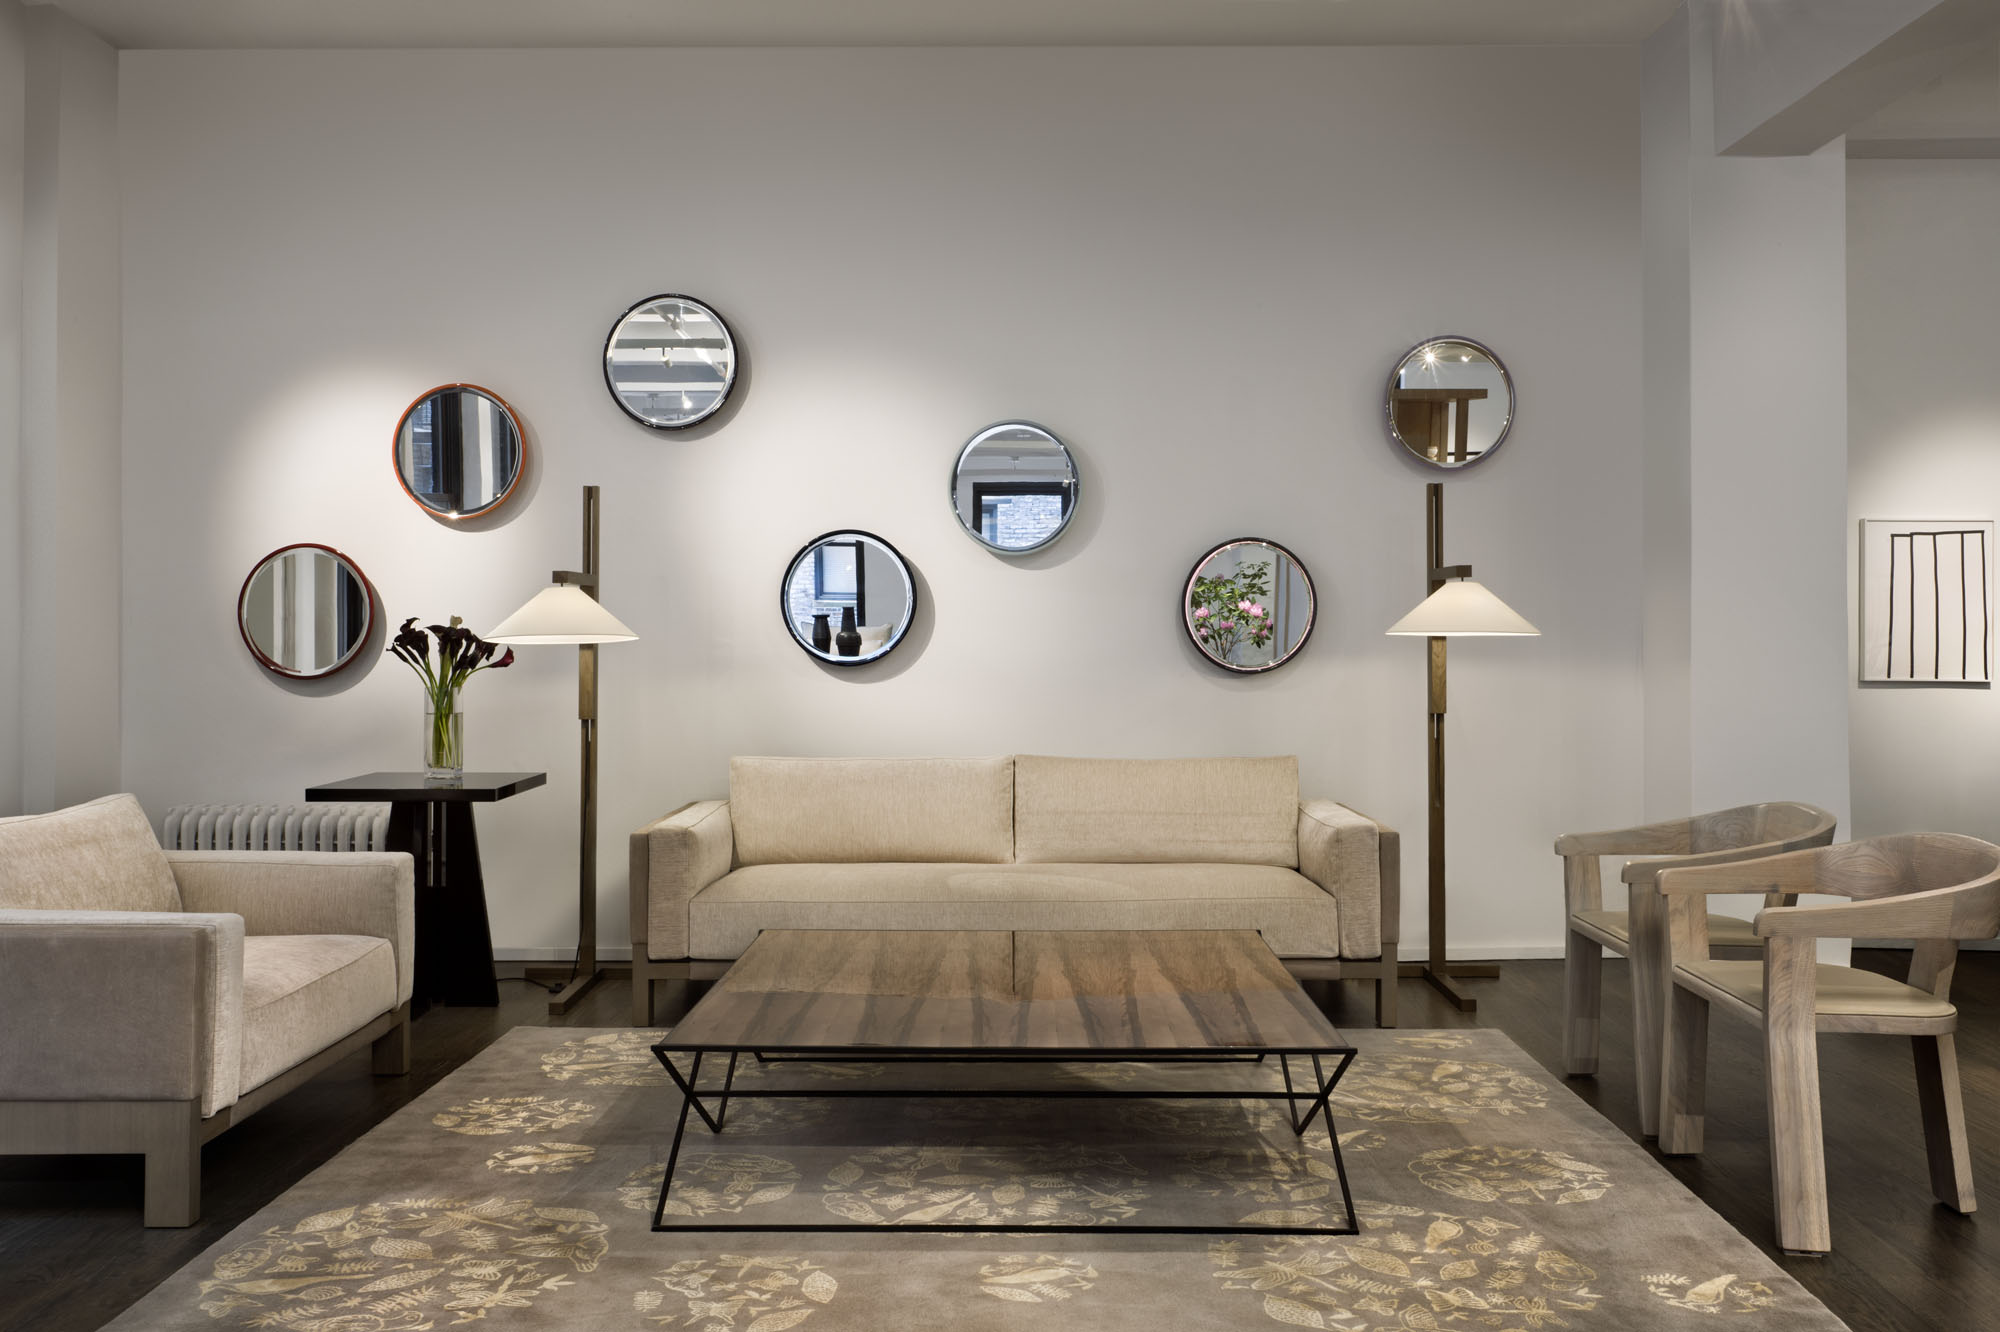 AVENUE ROAD New York  Avenue Room | Furniture Showroom New York AVENUE ROAD New York